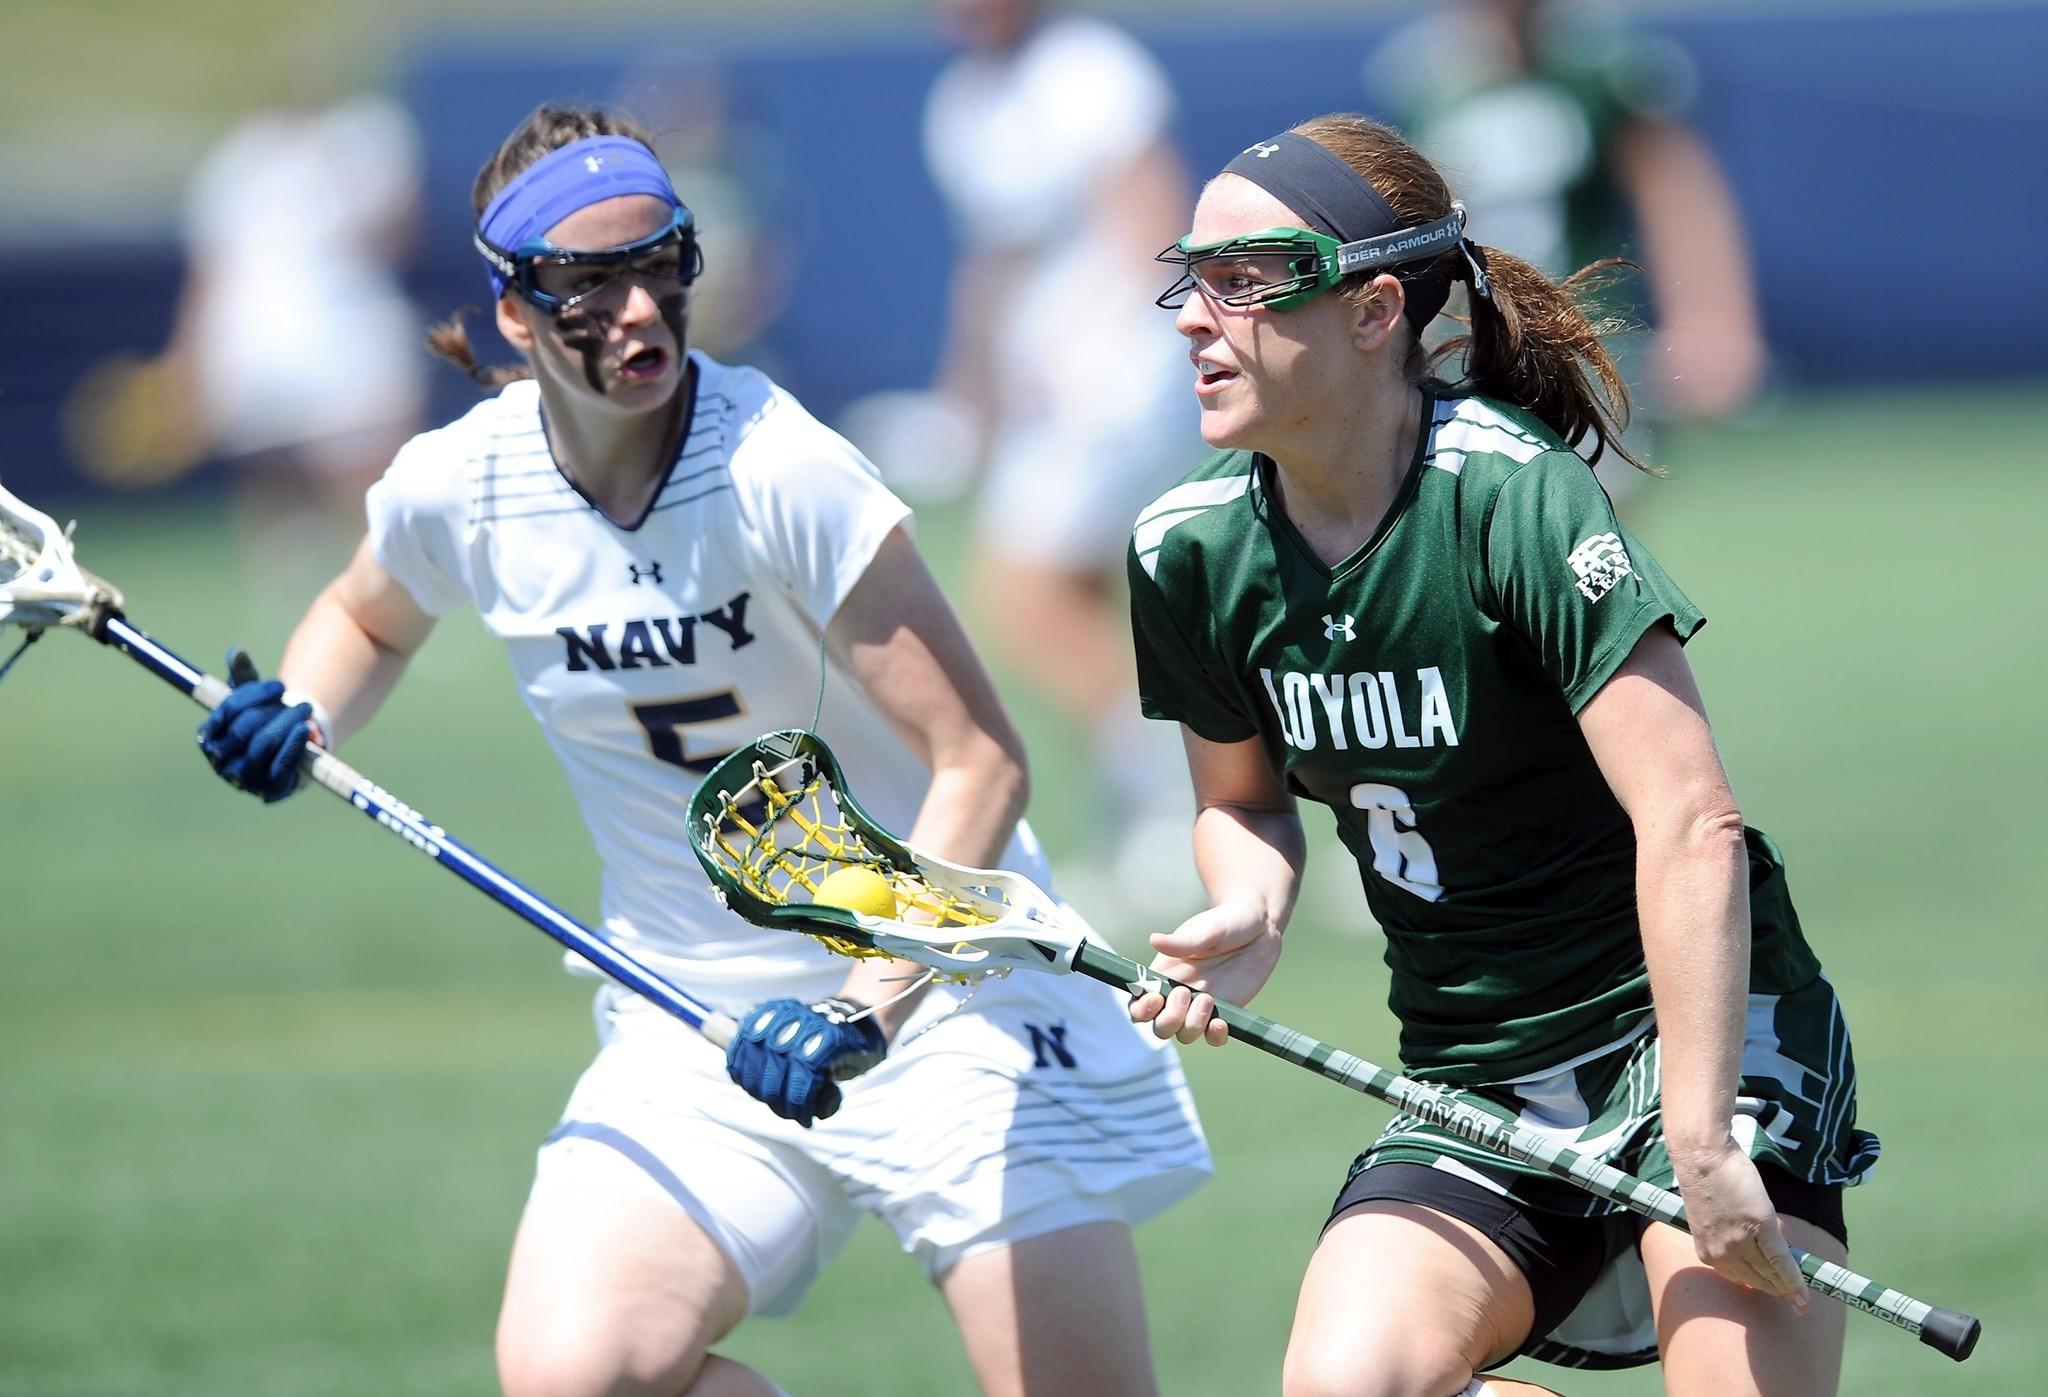 Loyola women's lacrosse beat Navy, win second straight ...